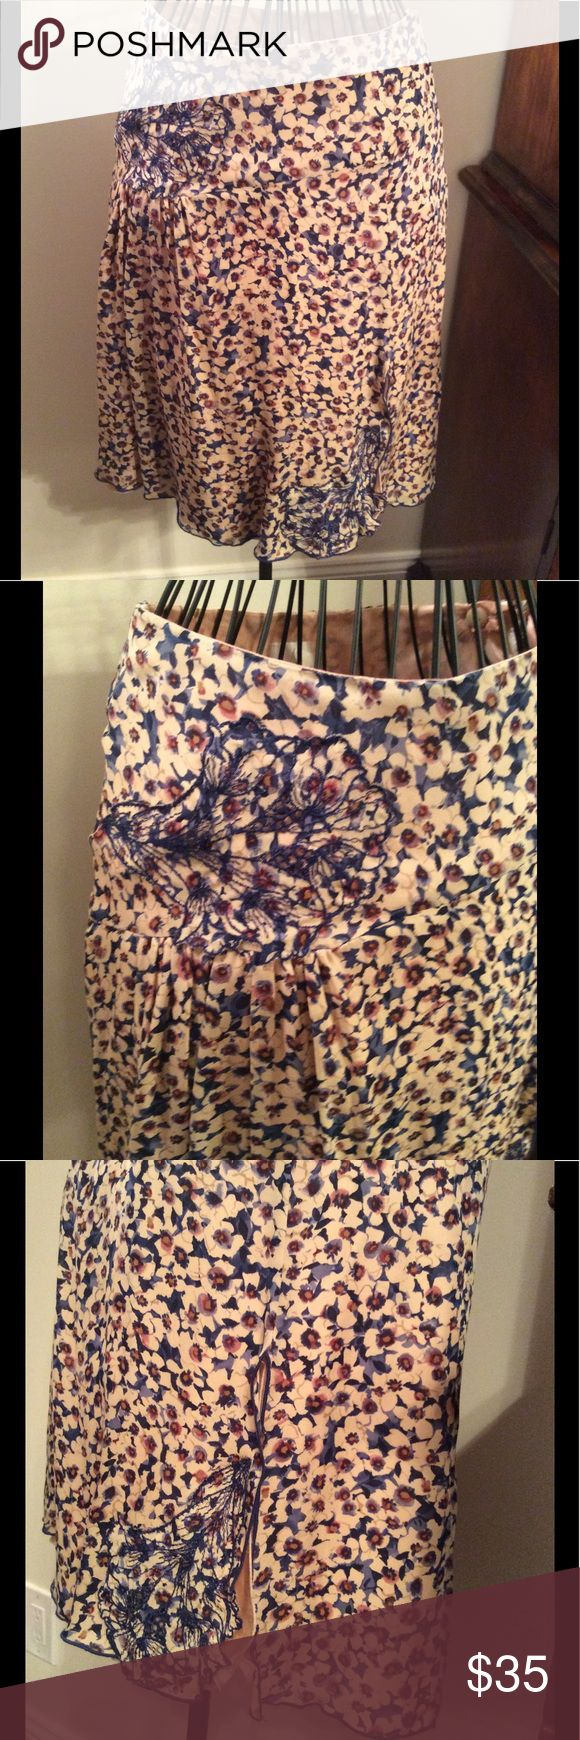 "Anna Sui 100% silk skirt. Anna Sui 100 % silk skirt. Beautiful flower embroidery in dark blue. Beige lining in acetate. Length 22"" top width 13.5"" middle width 21"". No signs of wear. Made in USA Anna Sui Skirts"